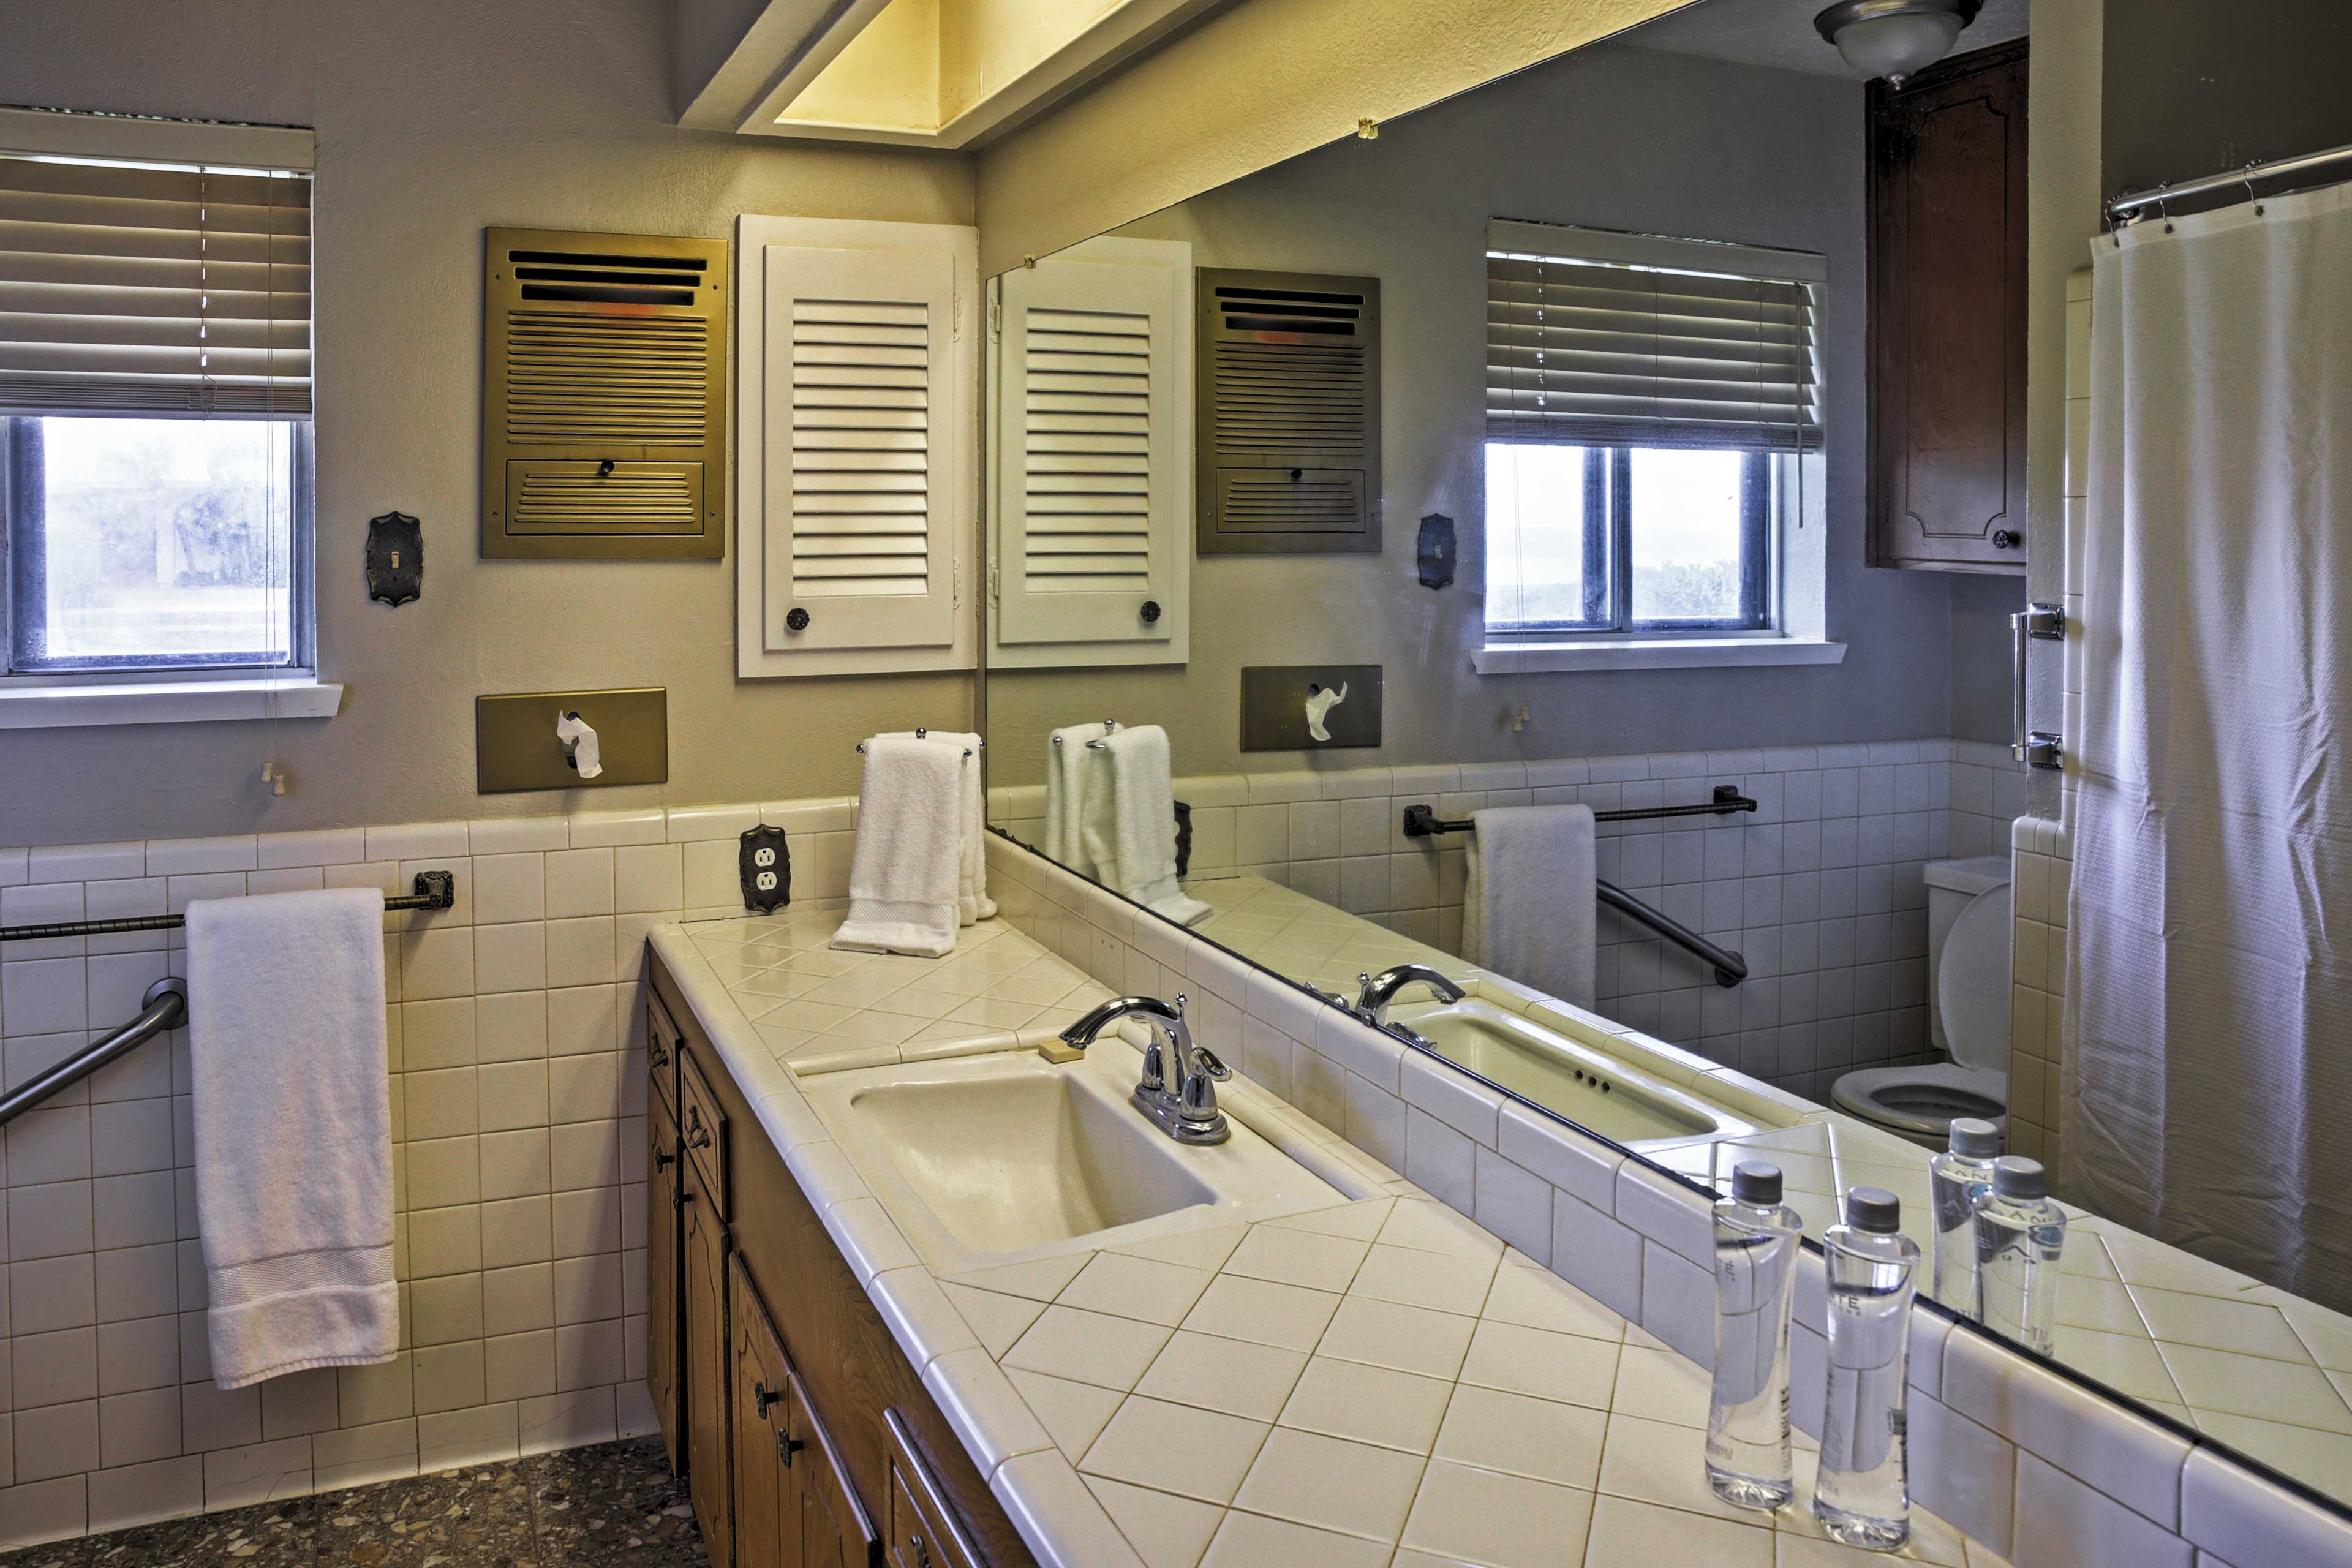 This bathroom provides enough space for many companions to get ready in the mornings!